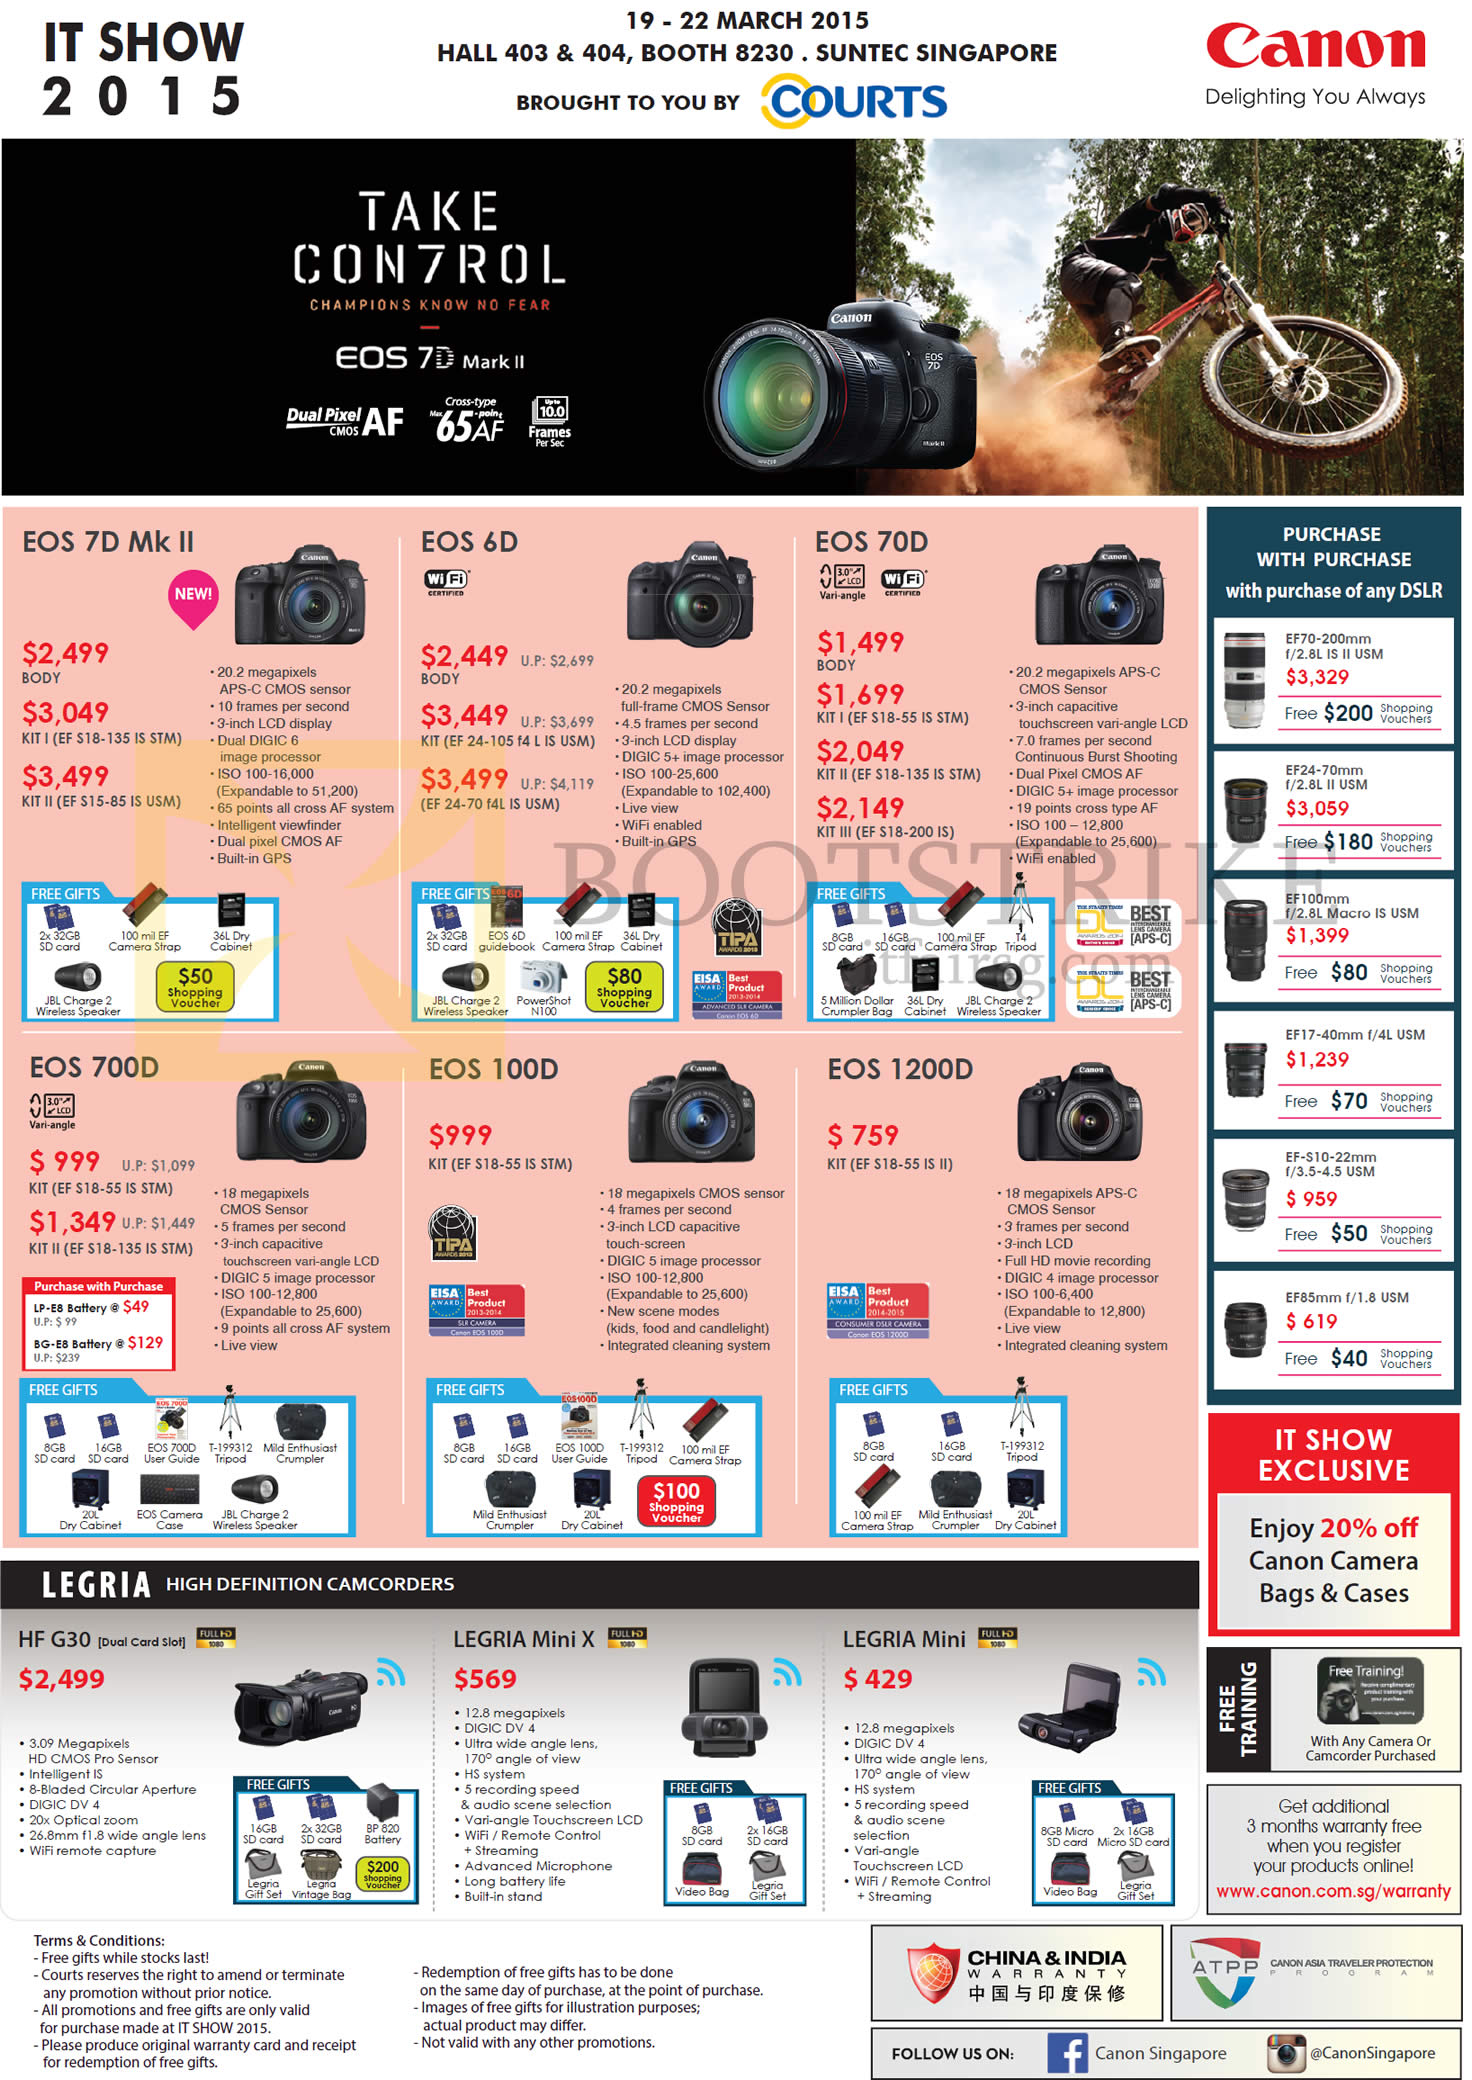 Camera List Of Dslr Cameras With Price it show 2015 price list flyer camera prices in singapore canon dslr digital cameras eos 7d mk ii 6d 70d 700d 100d 1200d legria hf g30 mini x mini